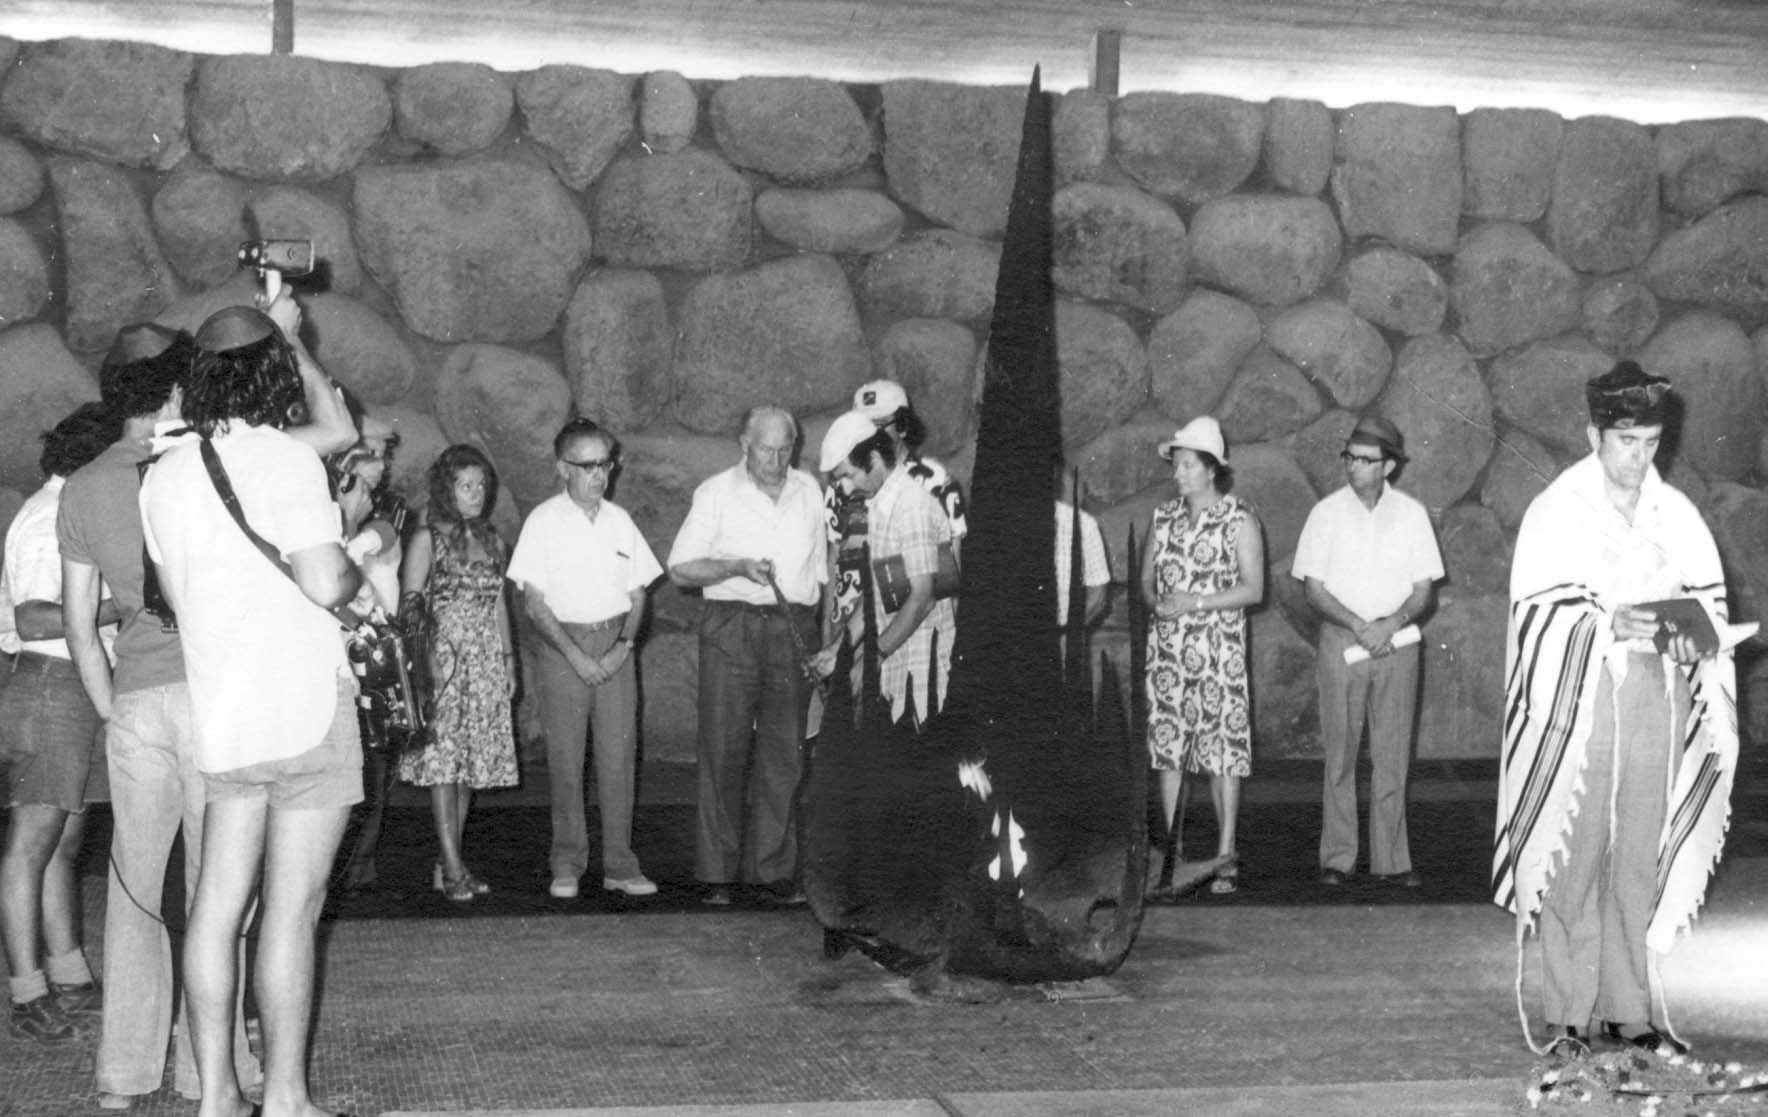 Rescuer Janis Lipke at the Righteous Among the Nations Award ceremony, August 25, 1977